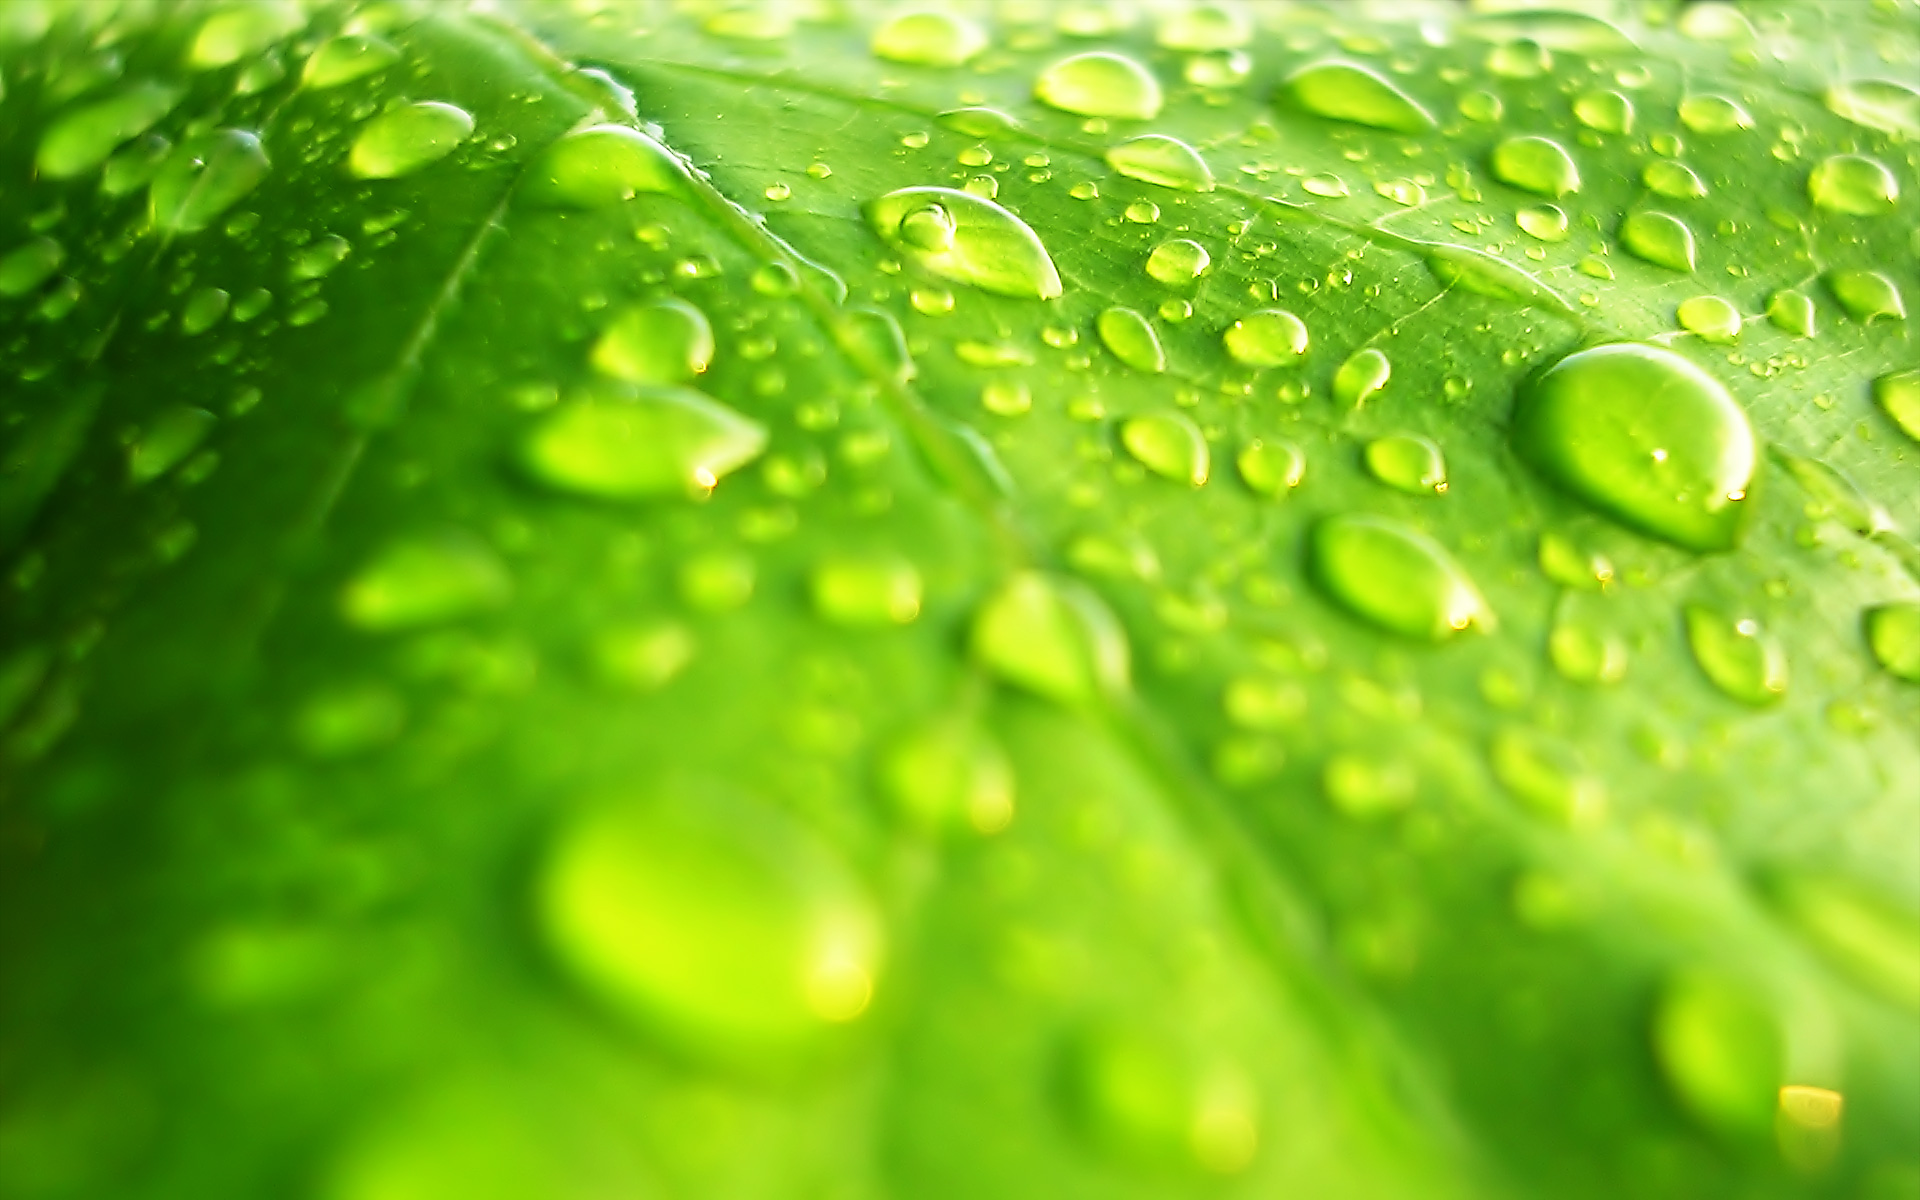 Water Drop Full HD Wallpaper And Background Image